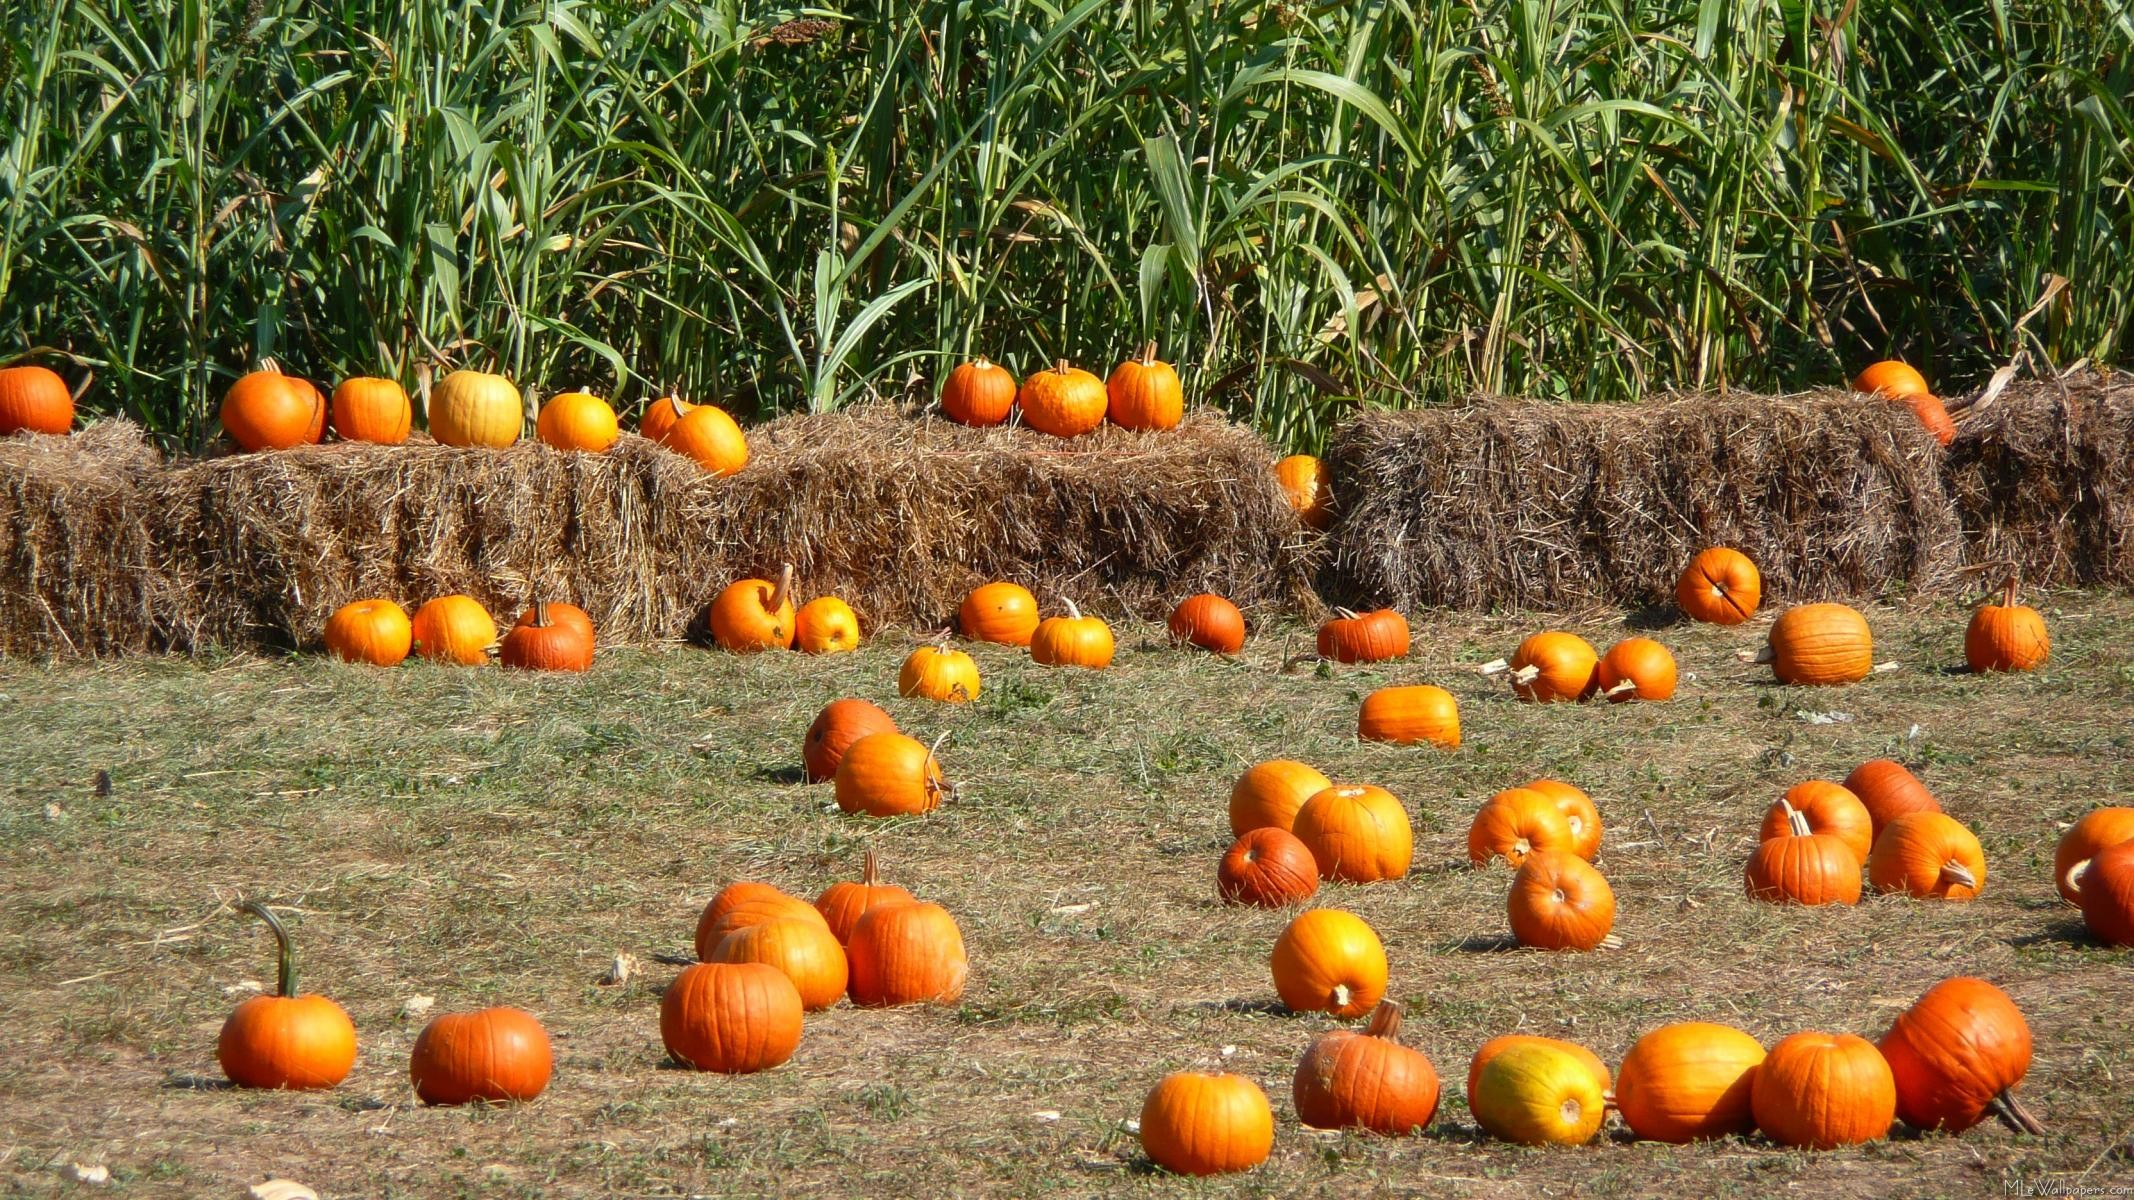 Thanksgiving Corn Farm: Fall Wallpaper Backgrounds With Pumpkins (55+ Images